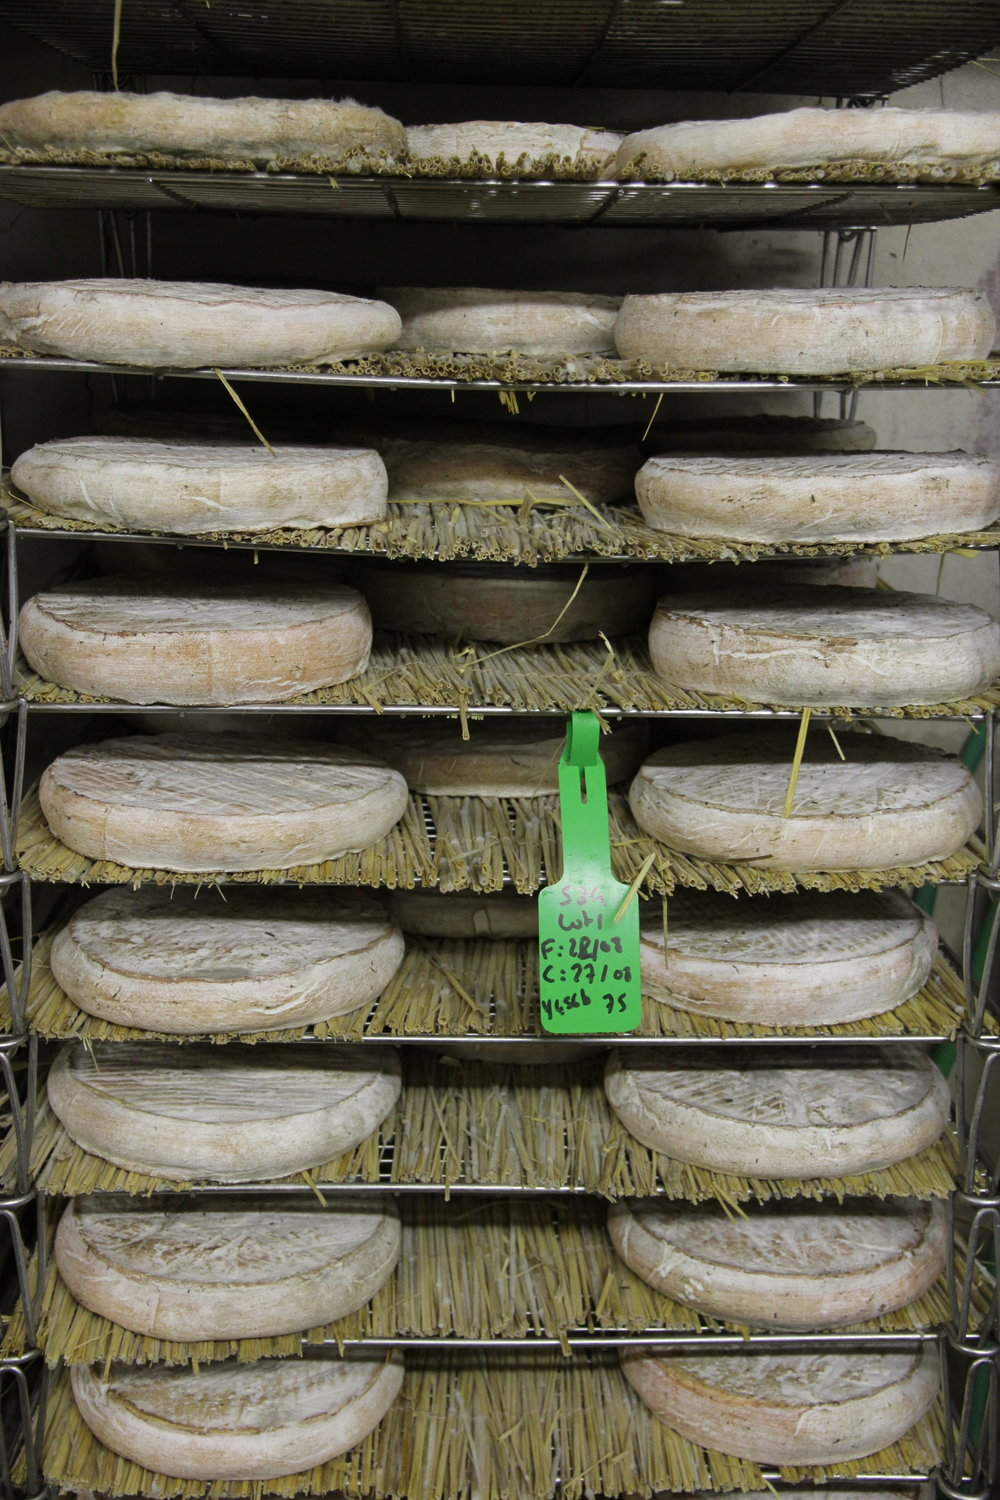 This is the farm's private stock in their affinage room. These cheeses are about 3 weeks old.